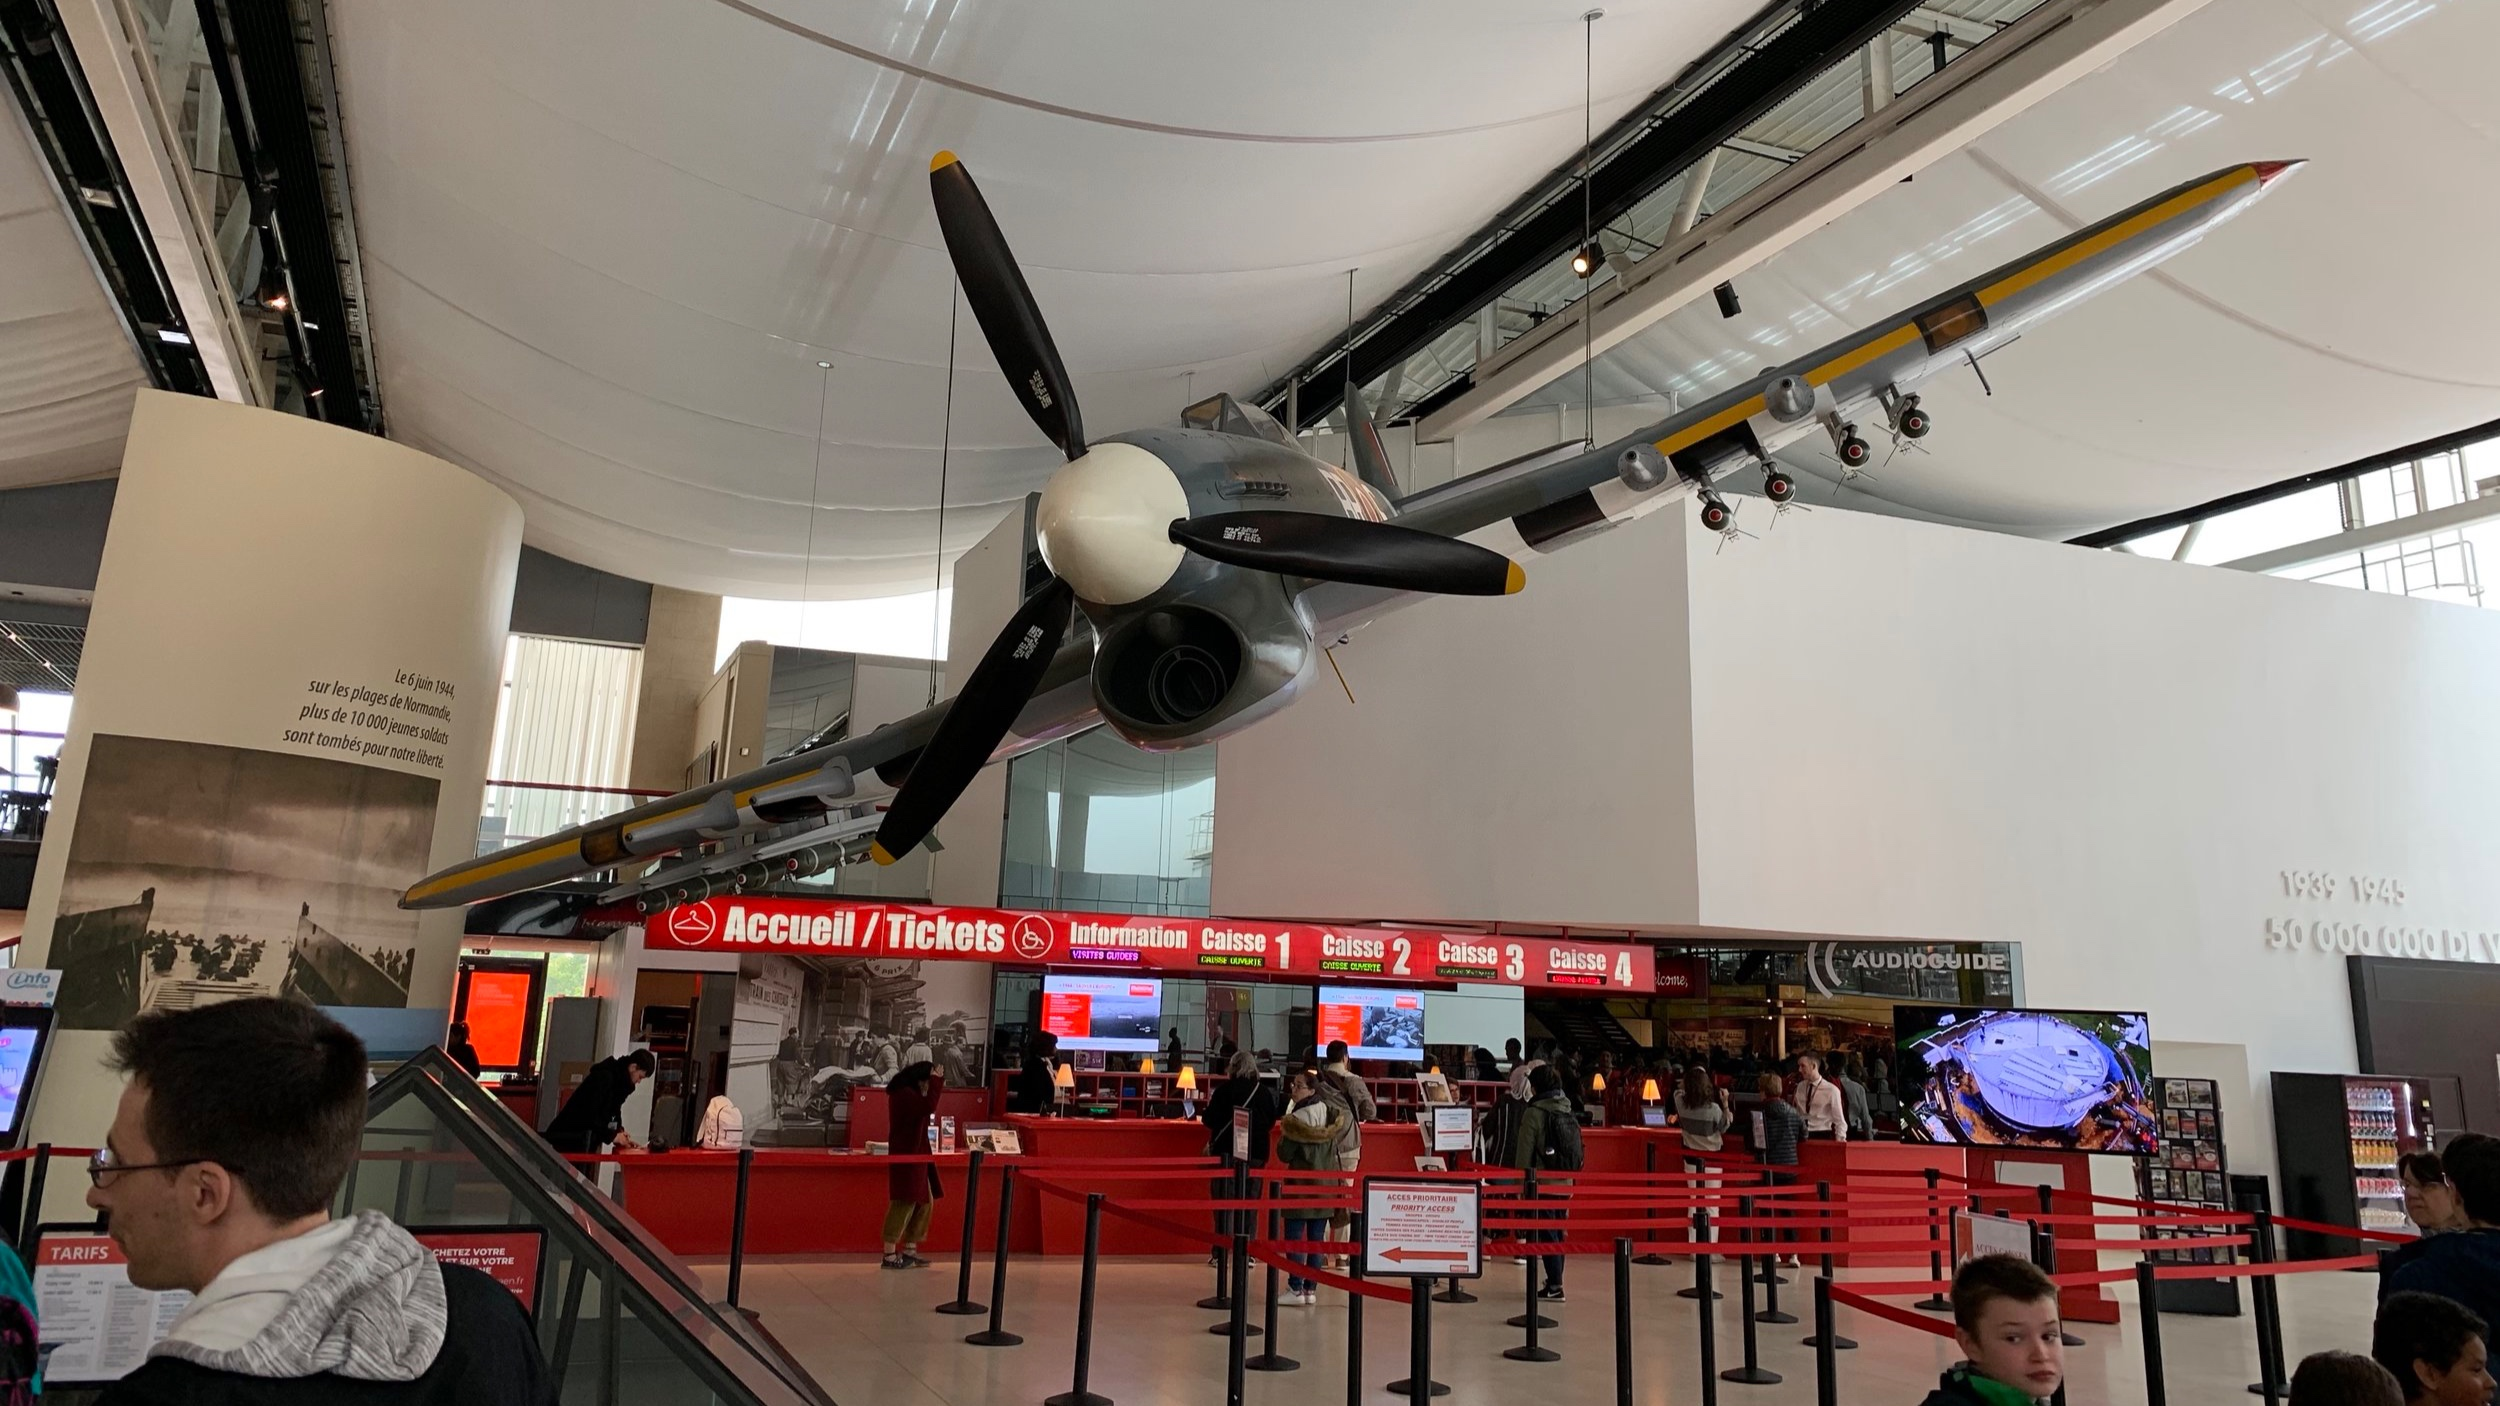 The main lobby of the museum featured a war plane suspended from the ceiling.